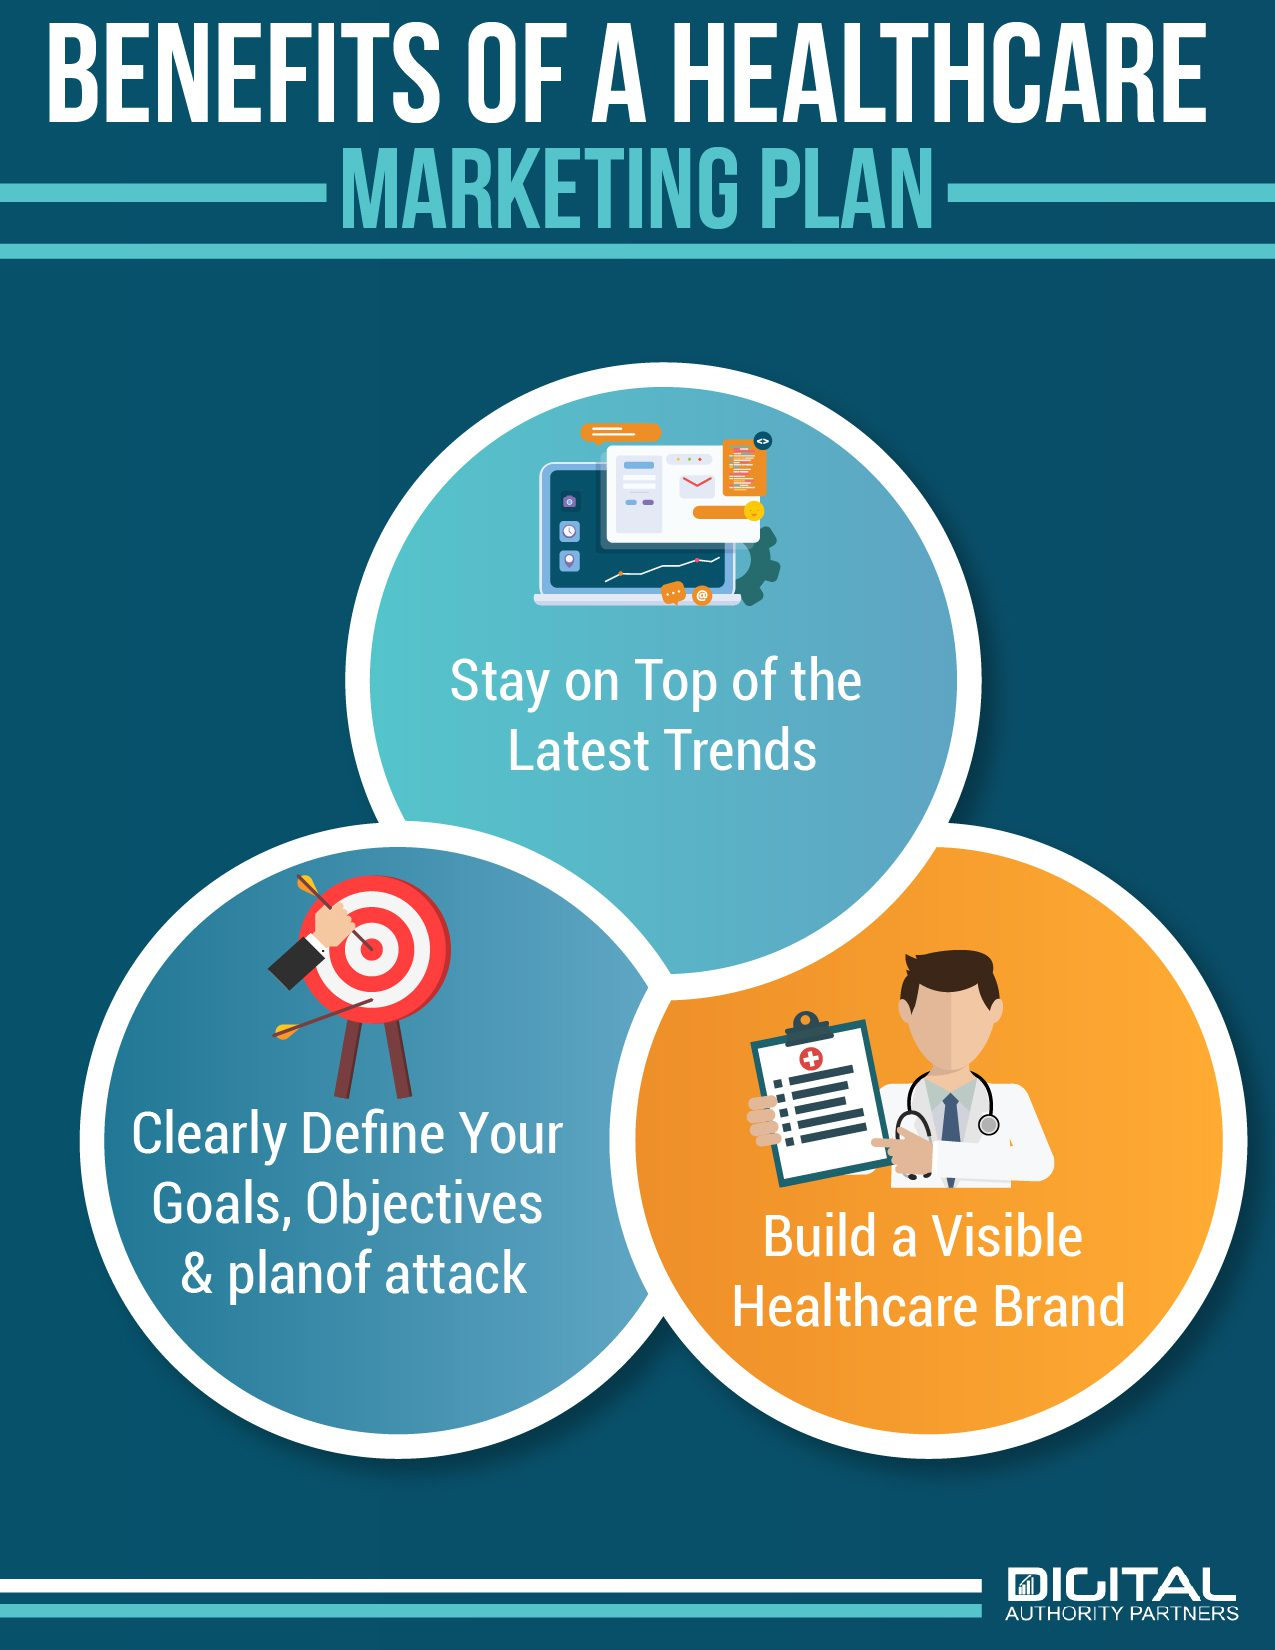 benefits of a healthcare marketing plan, stay on top of trends, define plan, and build visible healthcare brand